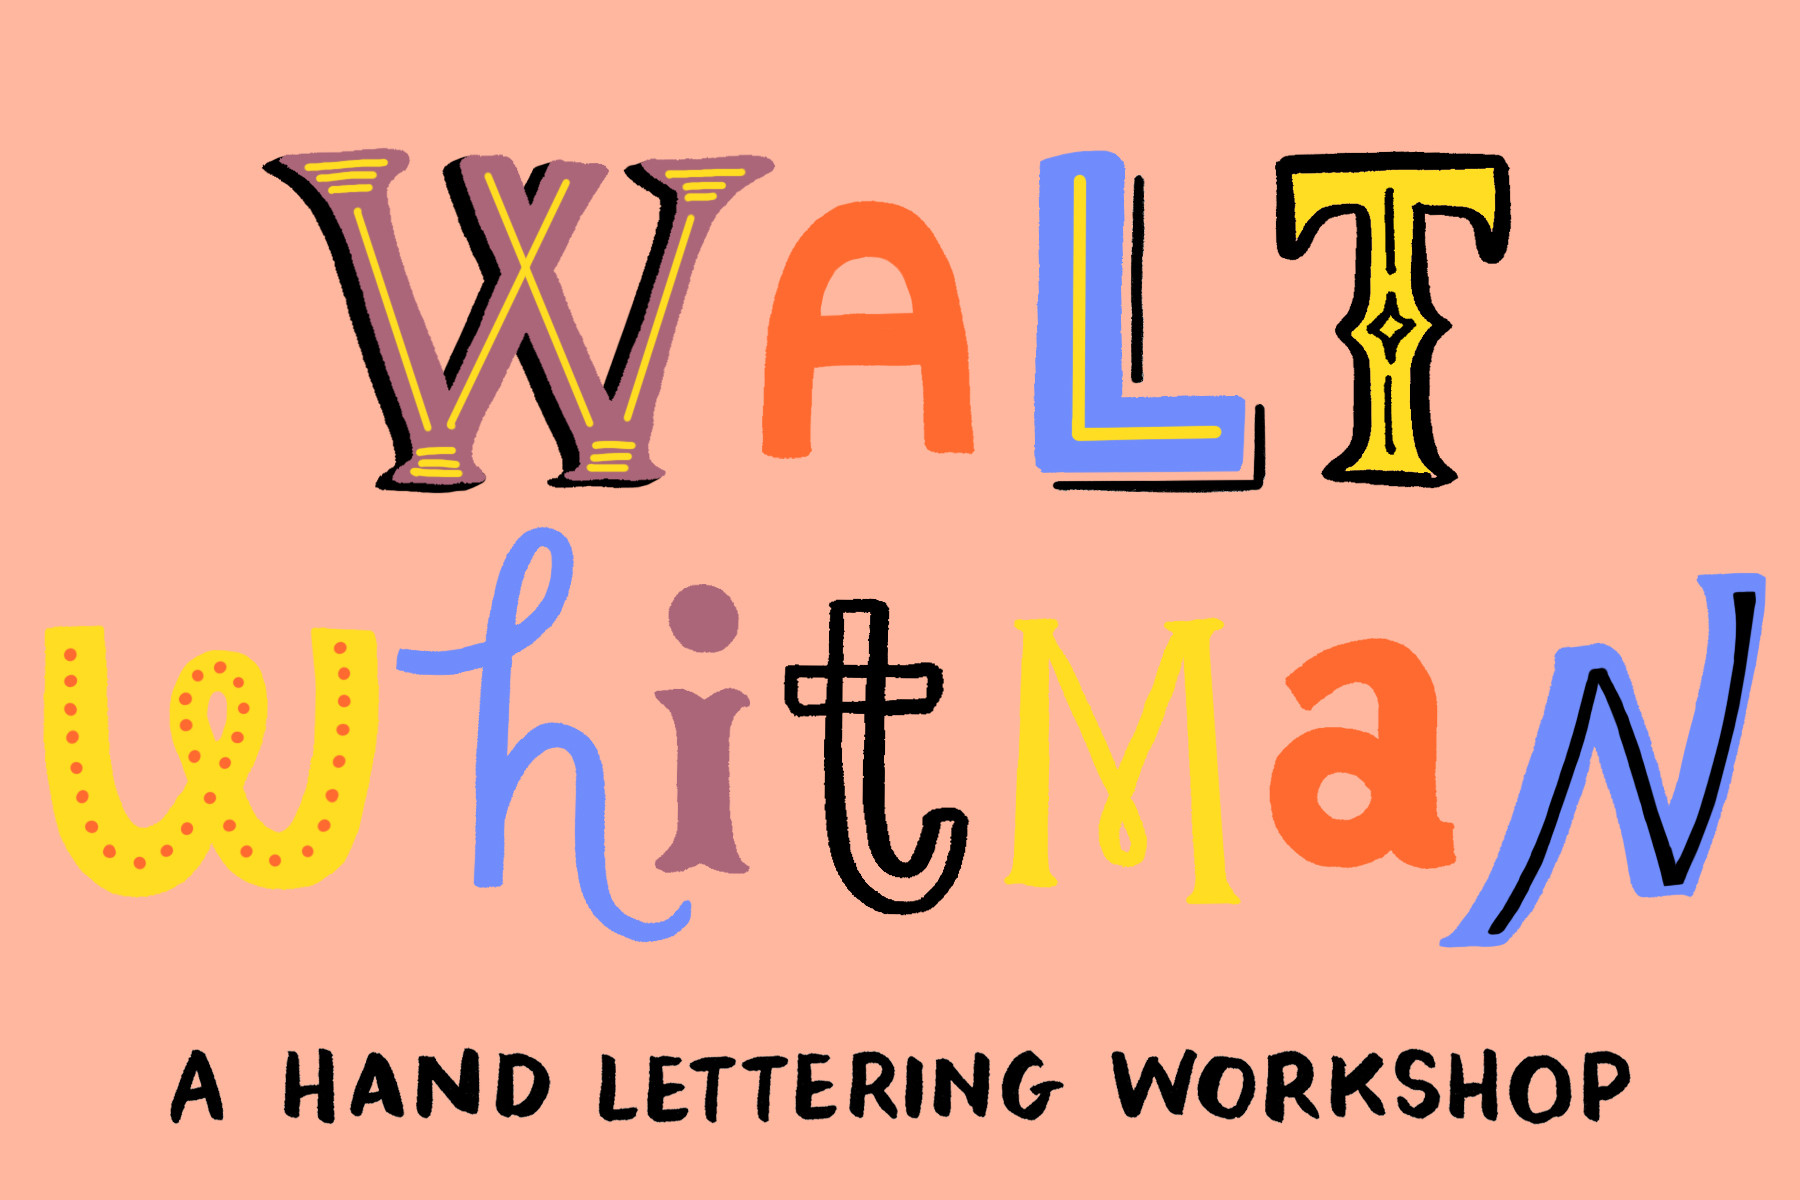 Illuminated Whitman Verse Workshop